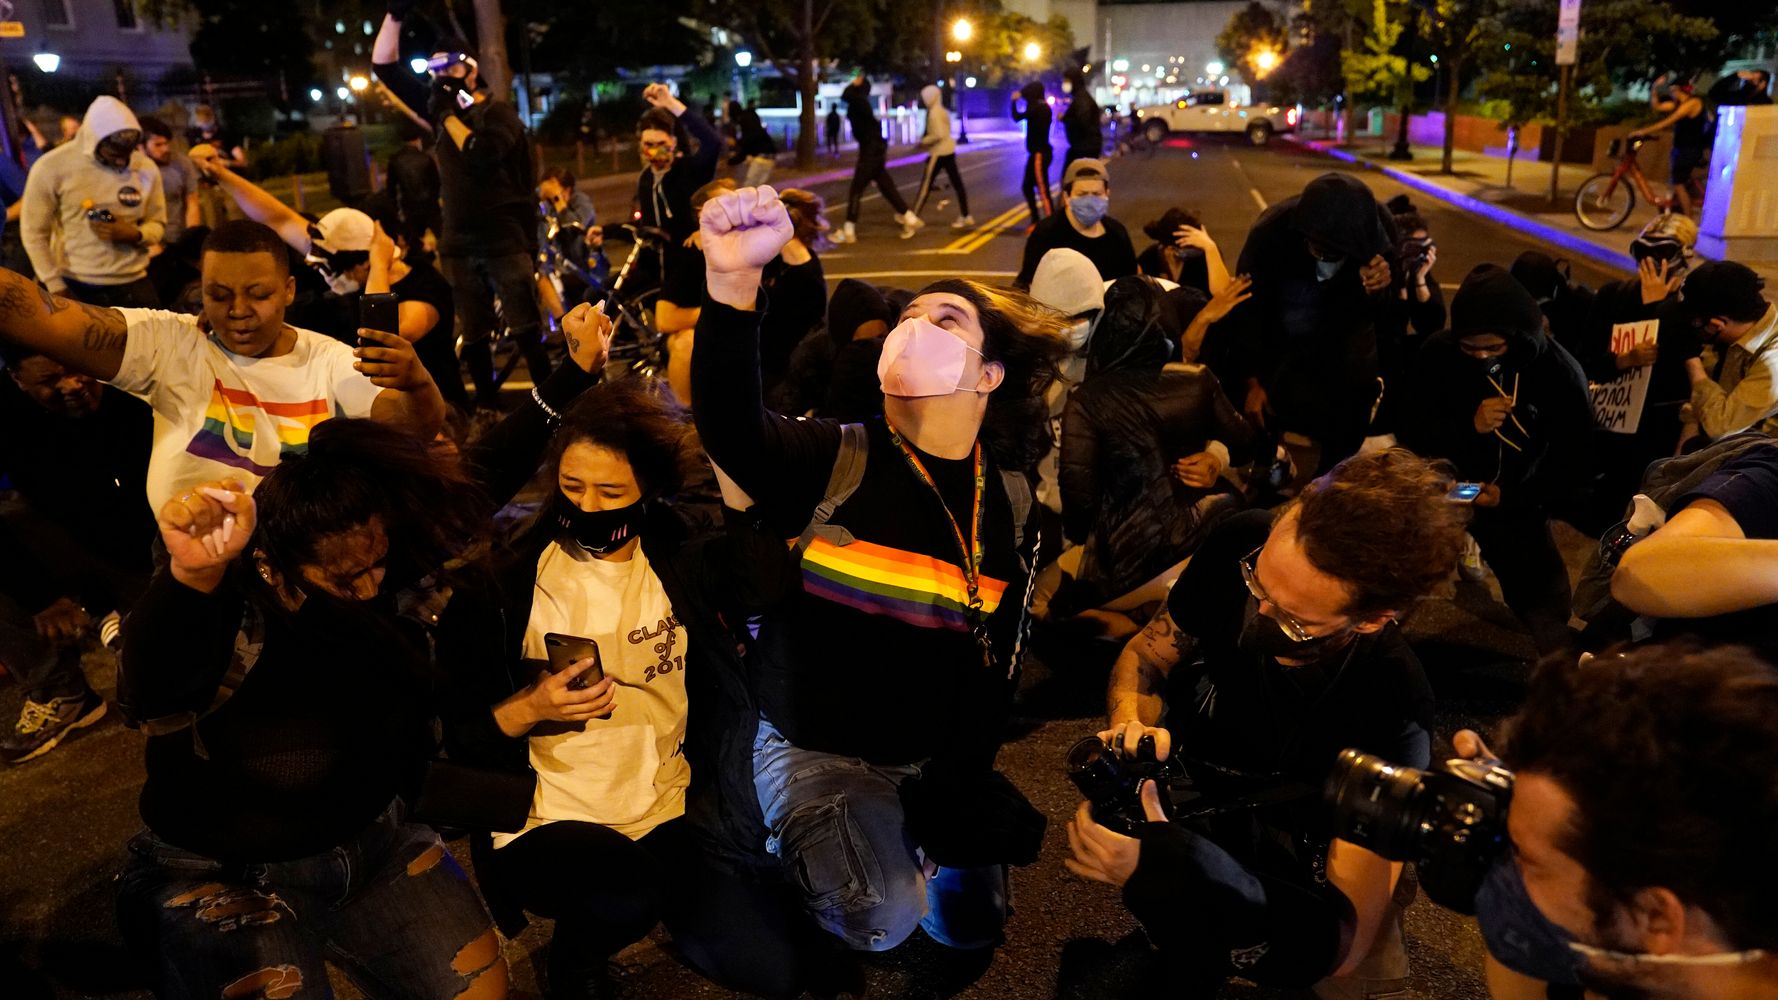 D.C. National Guard To Investigate Helicopter's 'Show Of Force' Against Protesters